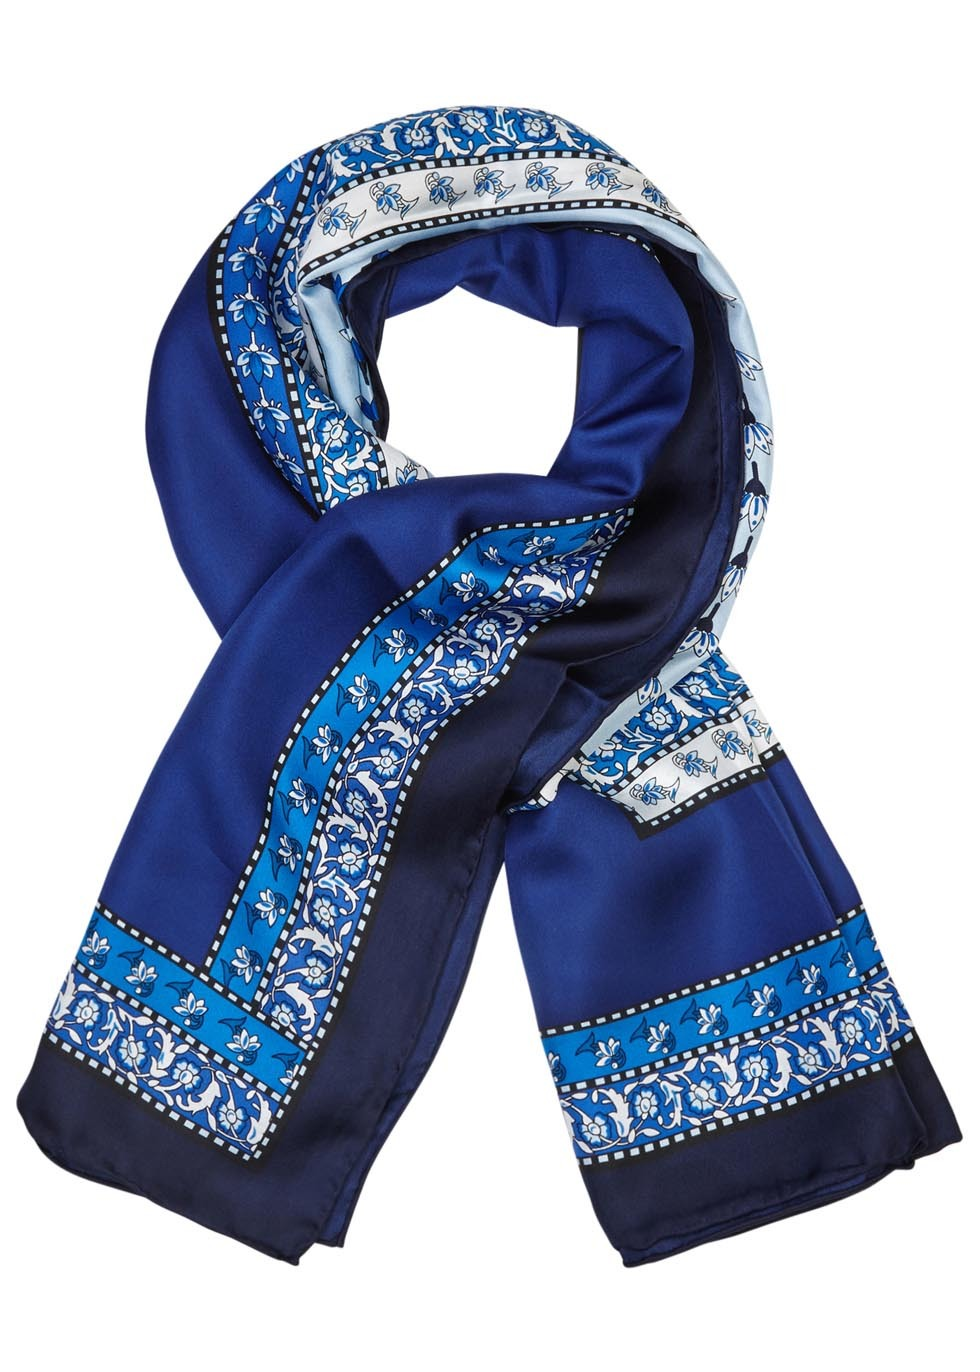 Floral Print Silk Scarf - predominant colour: royal blue; secondary colour: navy; occasions: casual, creative work; type of pattern: heavy; style: regular; size: standard; material: fabric; pattern: patterned/print; season: s/s 2016; wardrobe: highlight